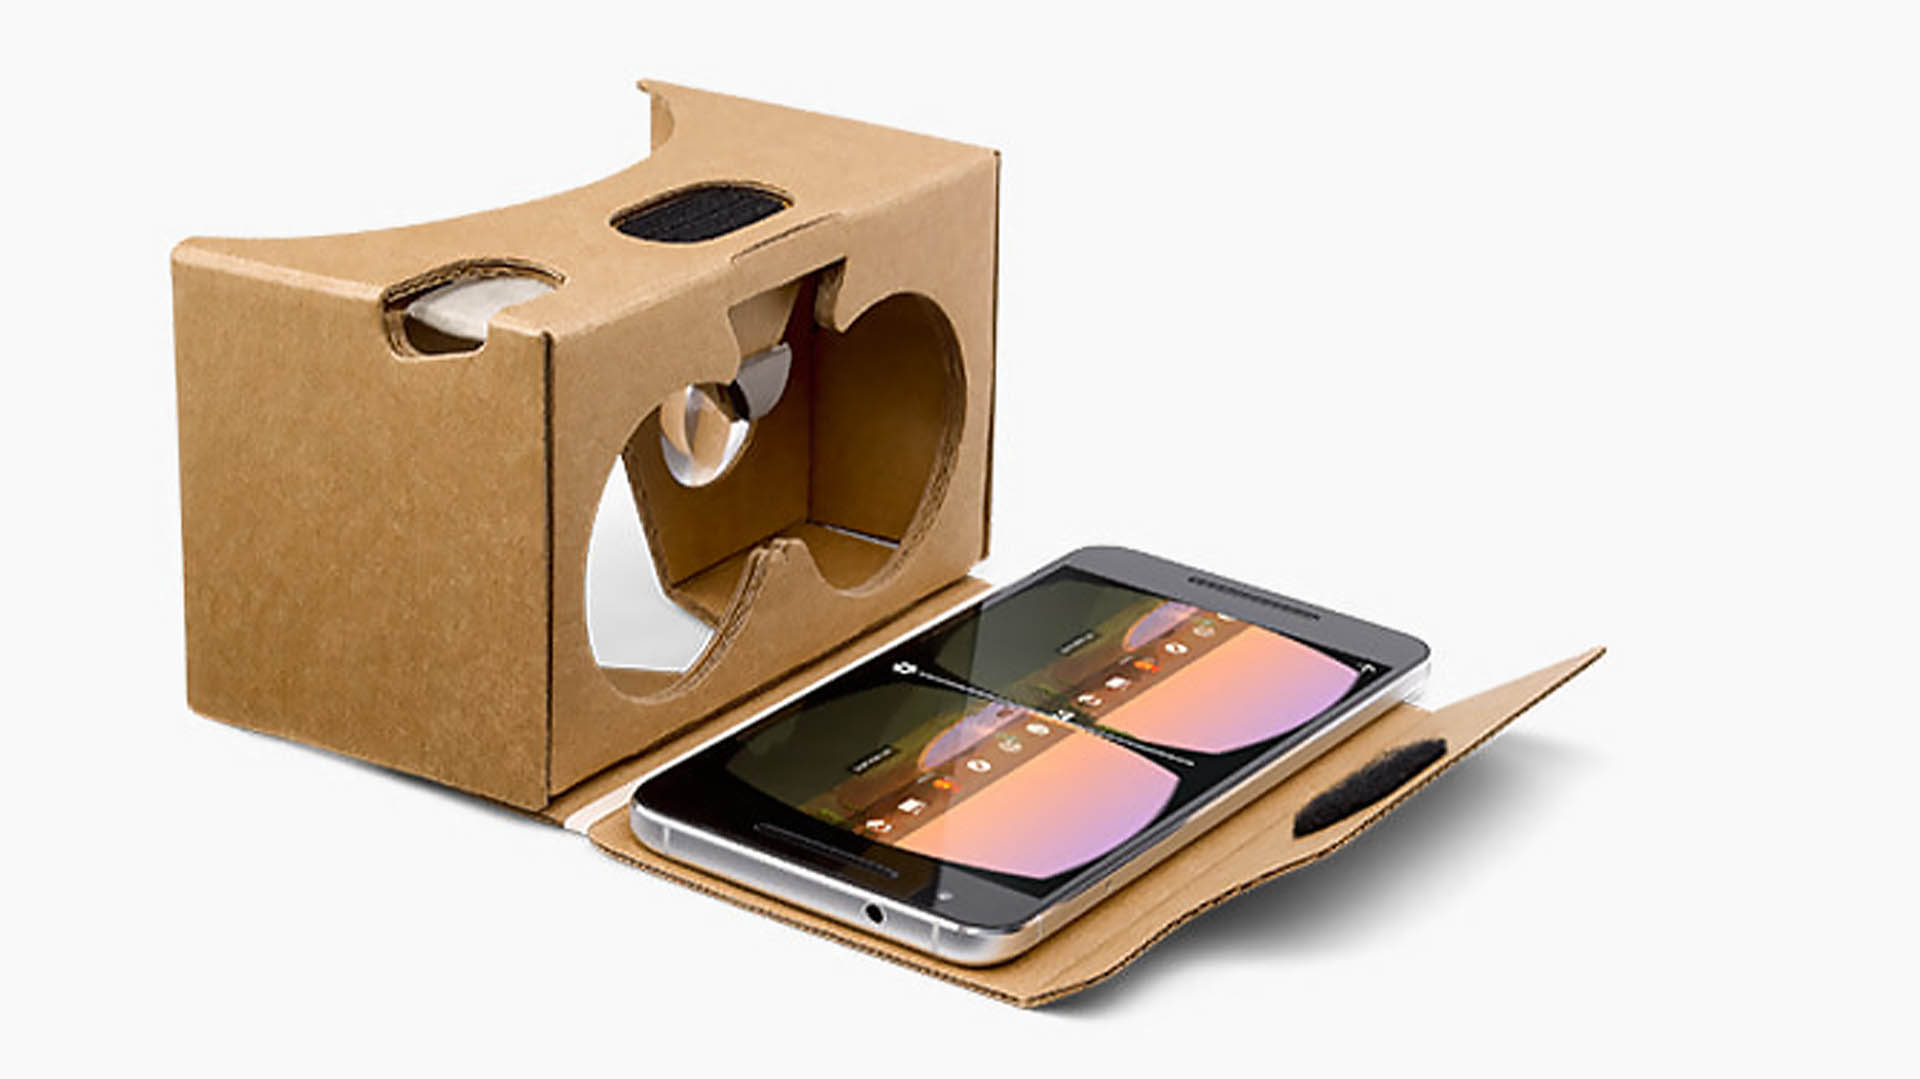 Google's no longer selling Cardboard VR headsets, but you can still make your own